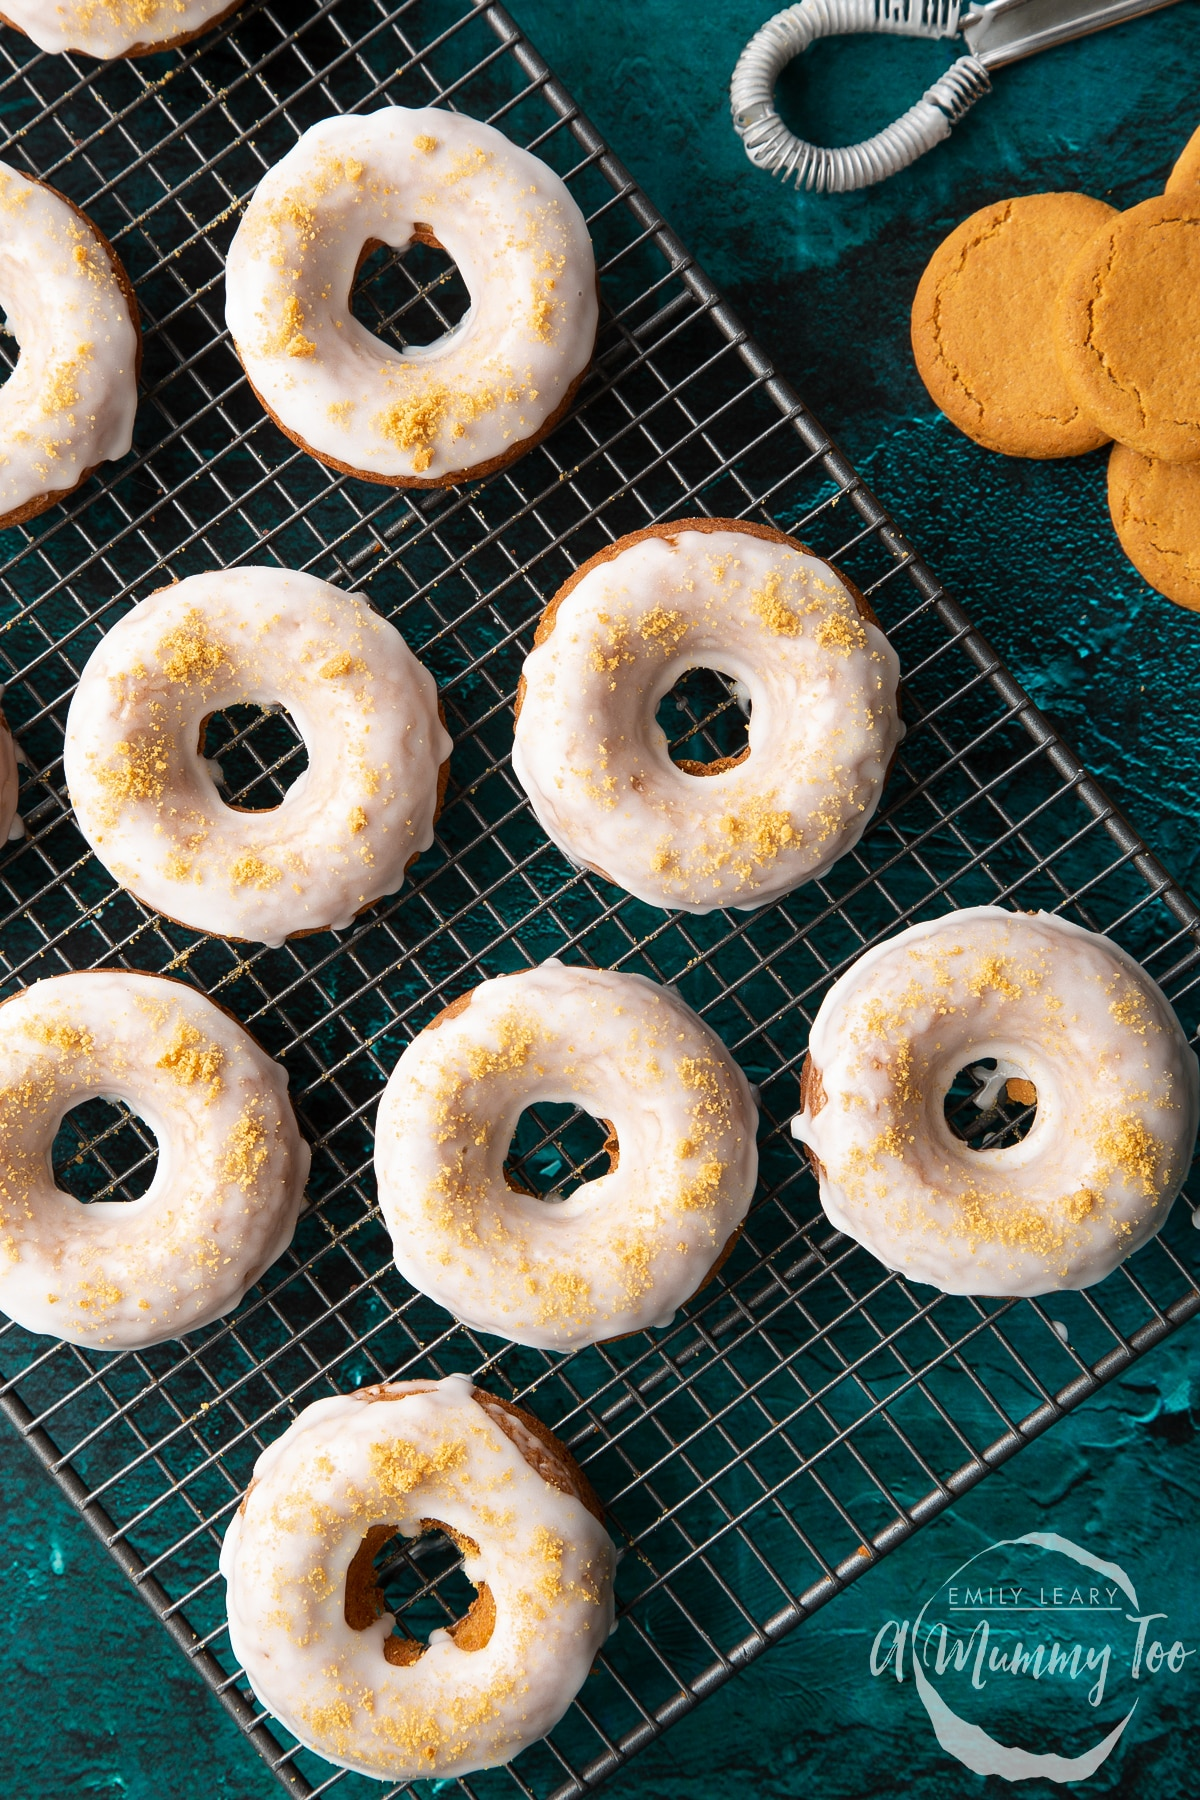 Baked gingerbread donuts with a lemon glaze on a wire cooling rack. Shown from above.